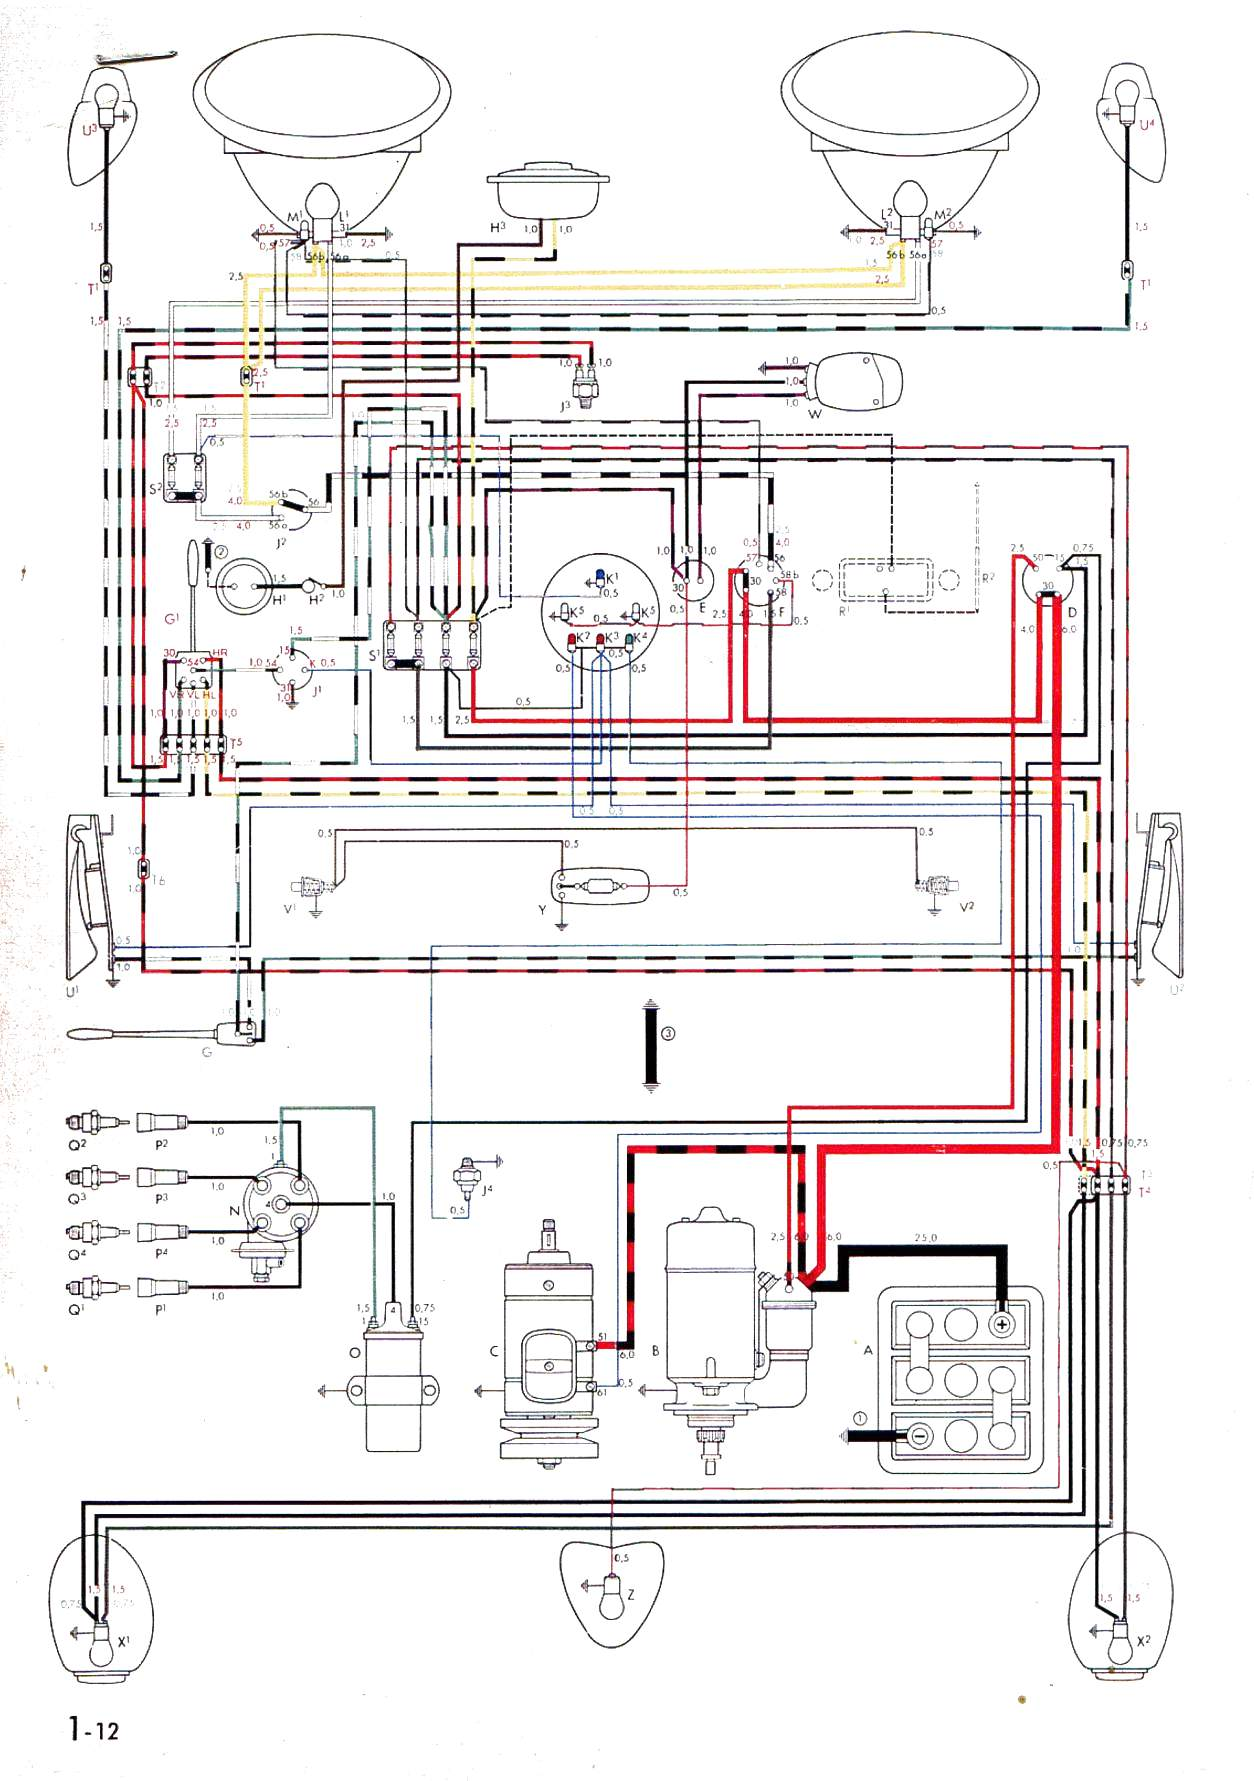 vw rail buggy wiring diagram vw rail wiring